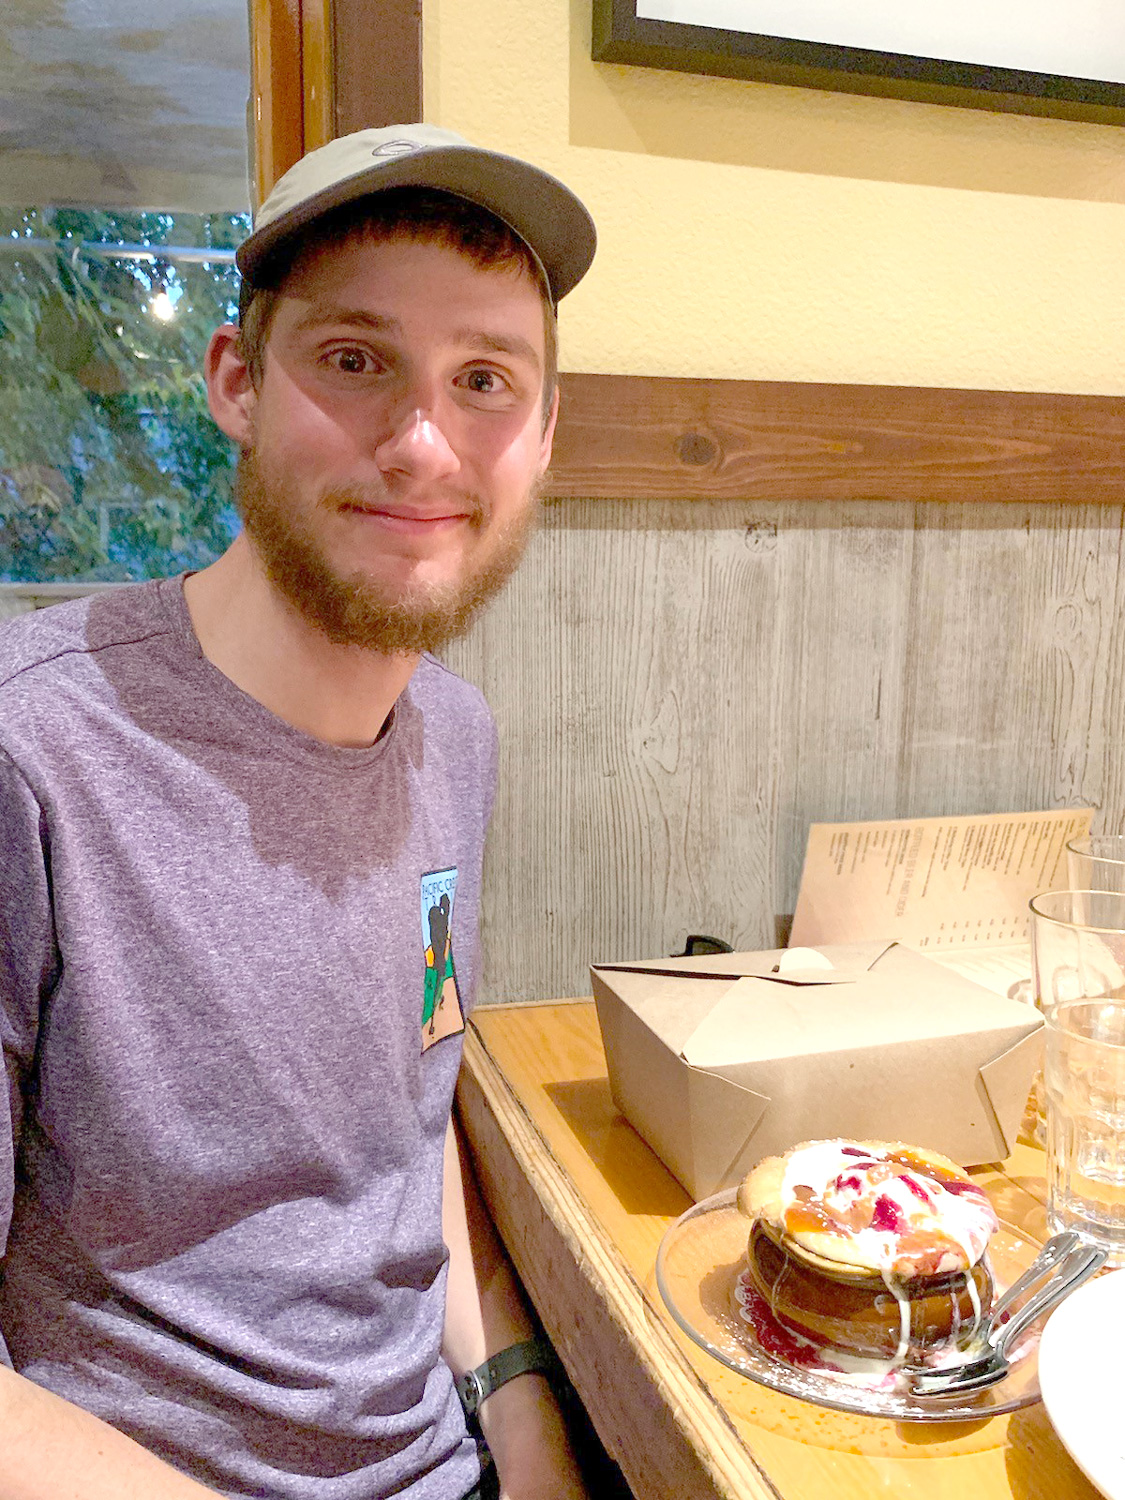 pct-day-68-matthew-with-dessert.jpg